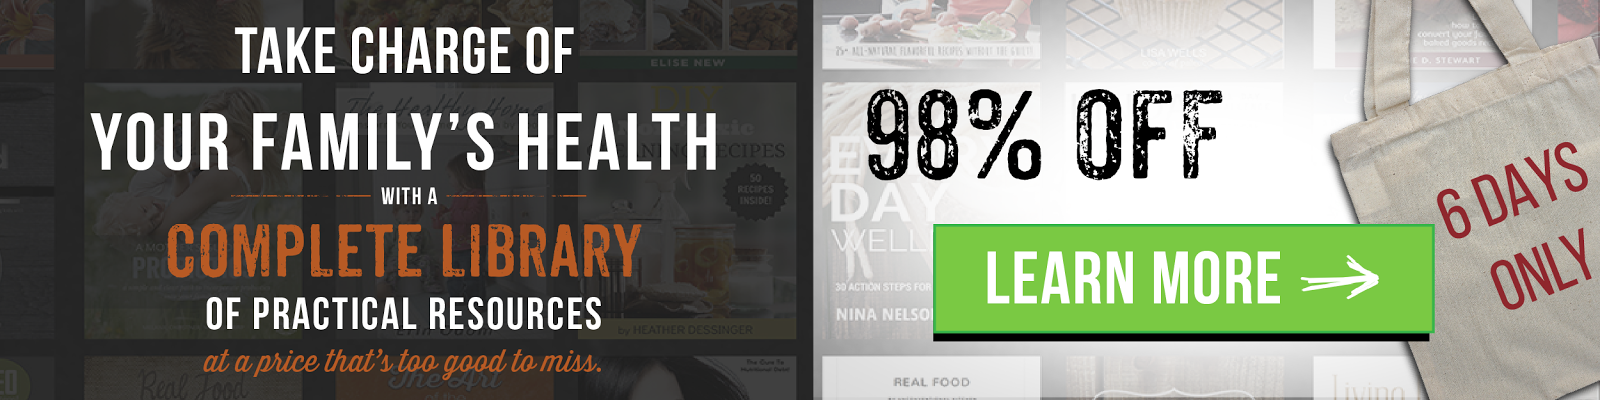 ONLY A FEW DAYS LEFT TO GET THE HEALTHY LIVING BUNDLE!